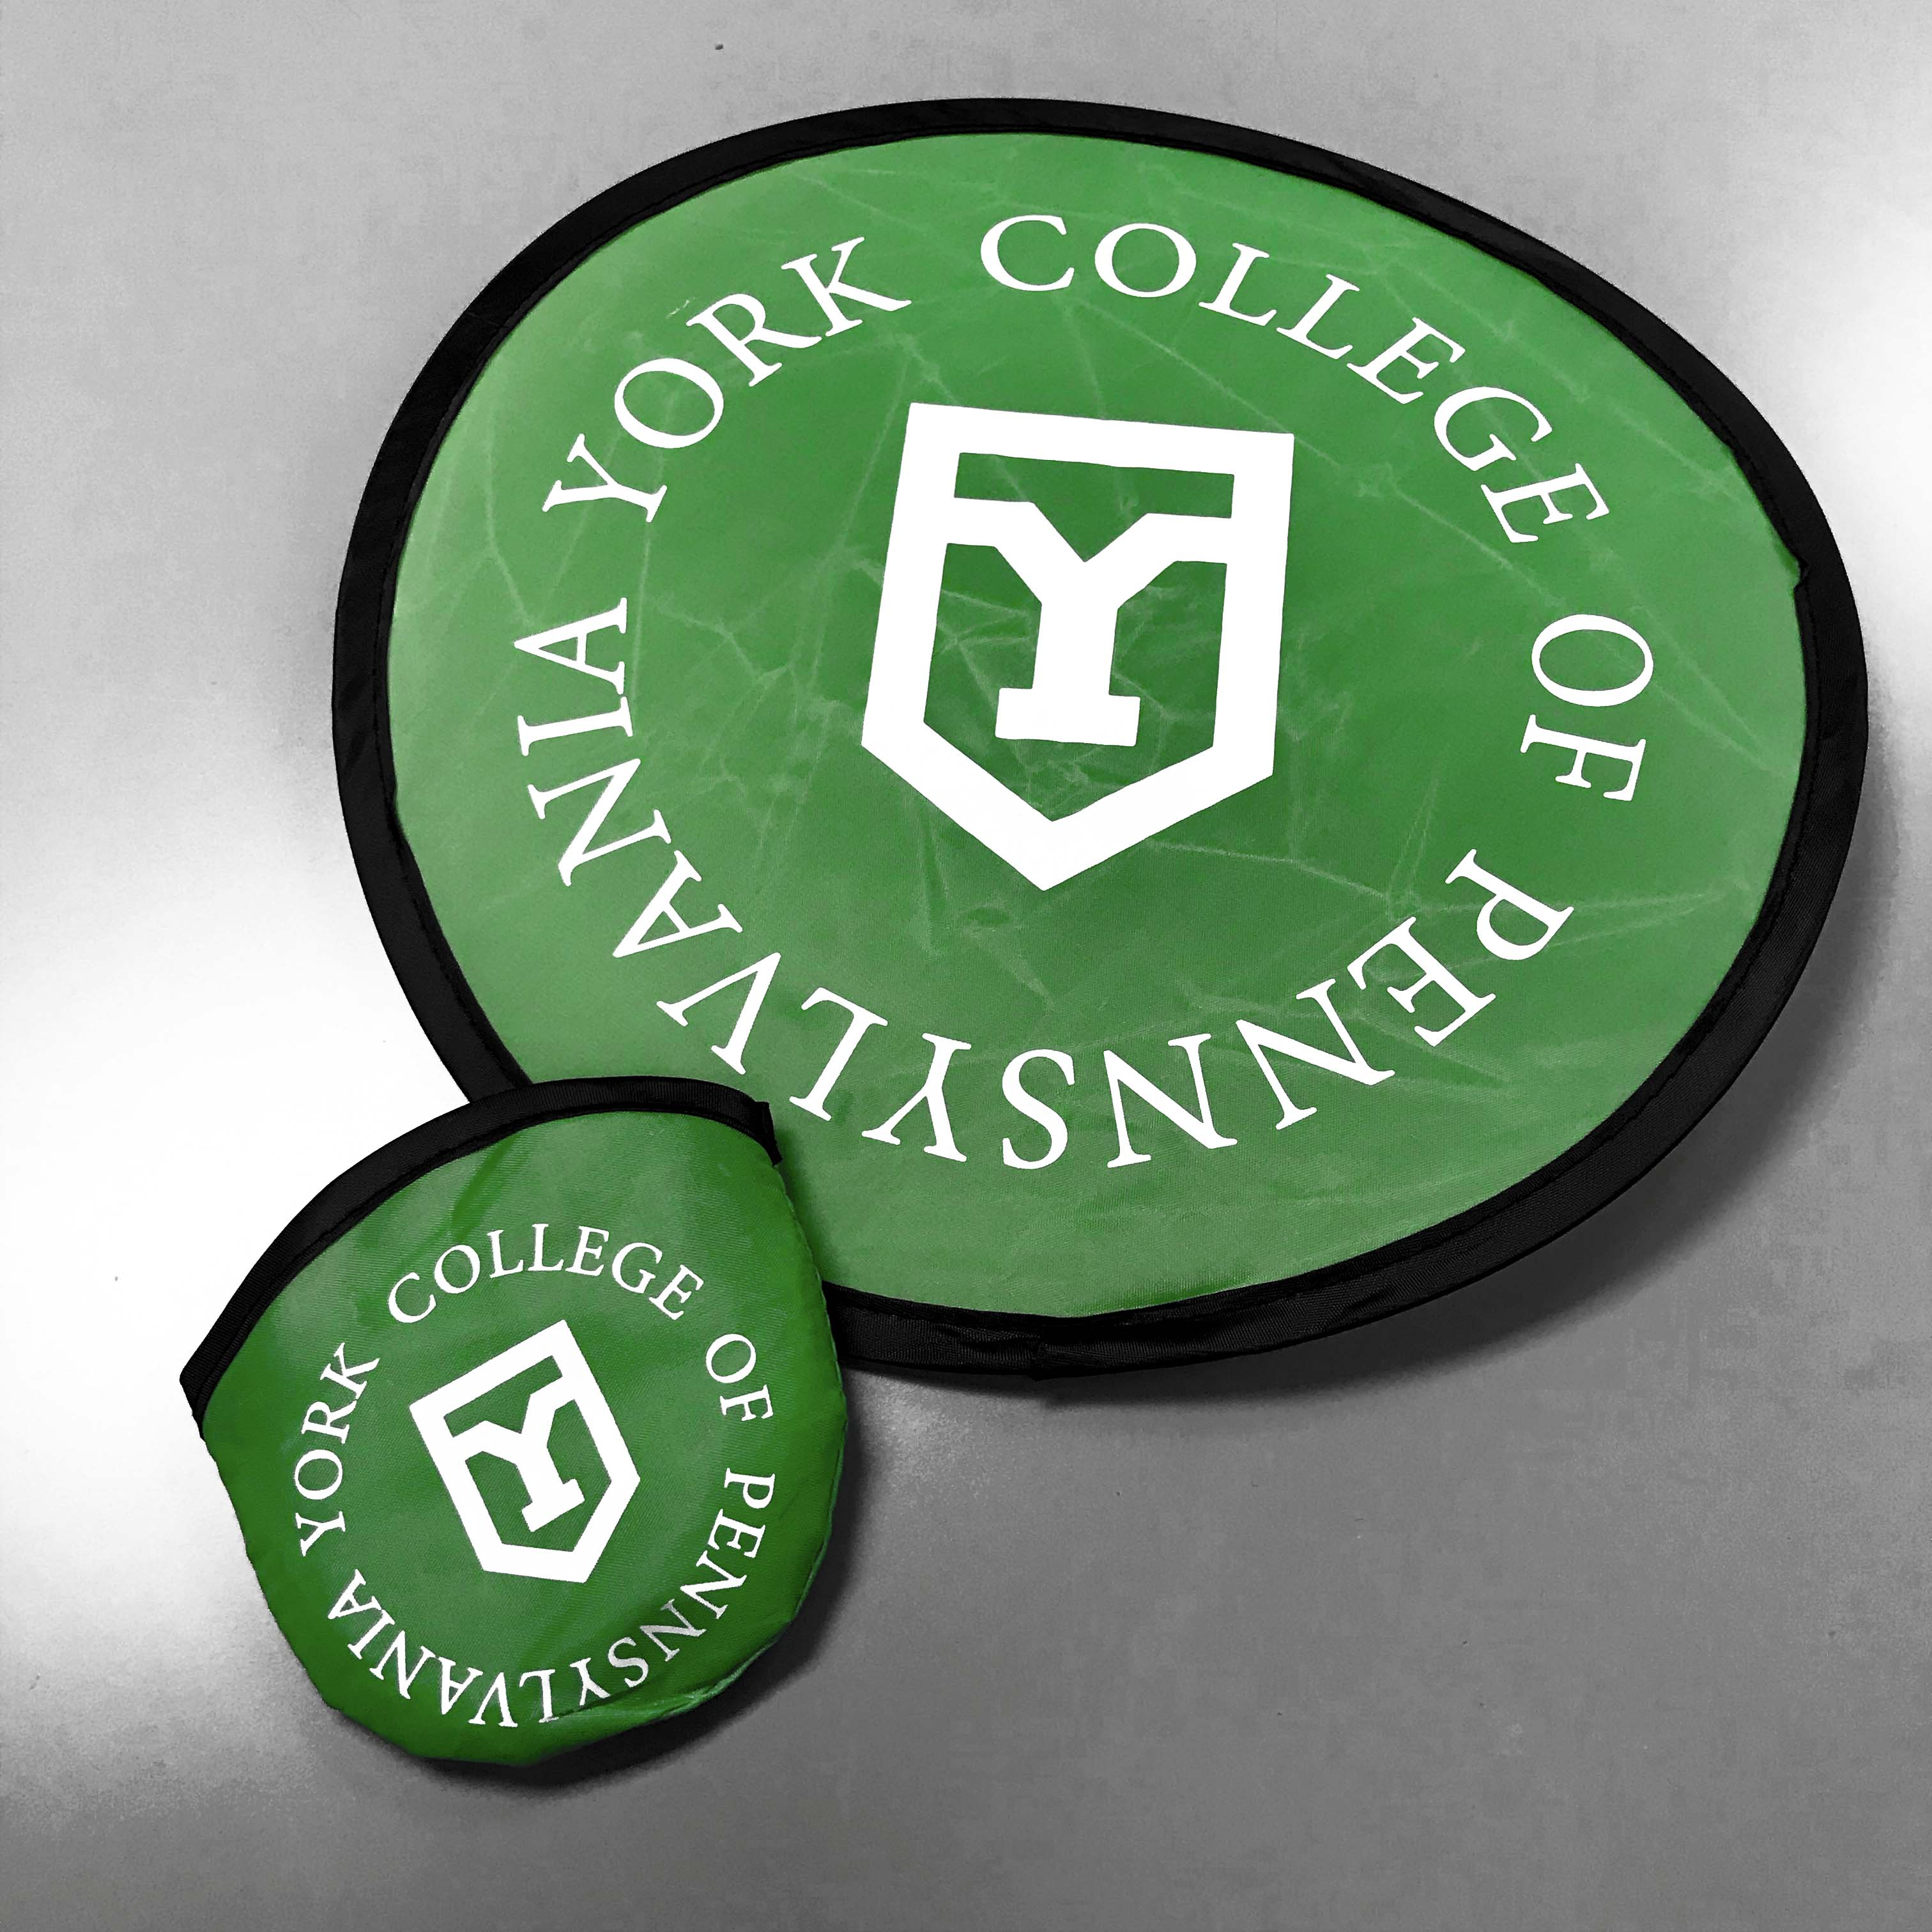 York College of Pennsylvania green frisbee.